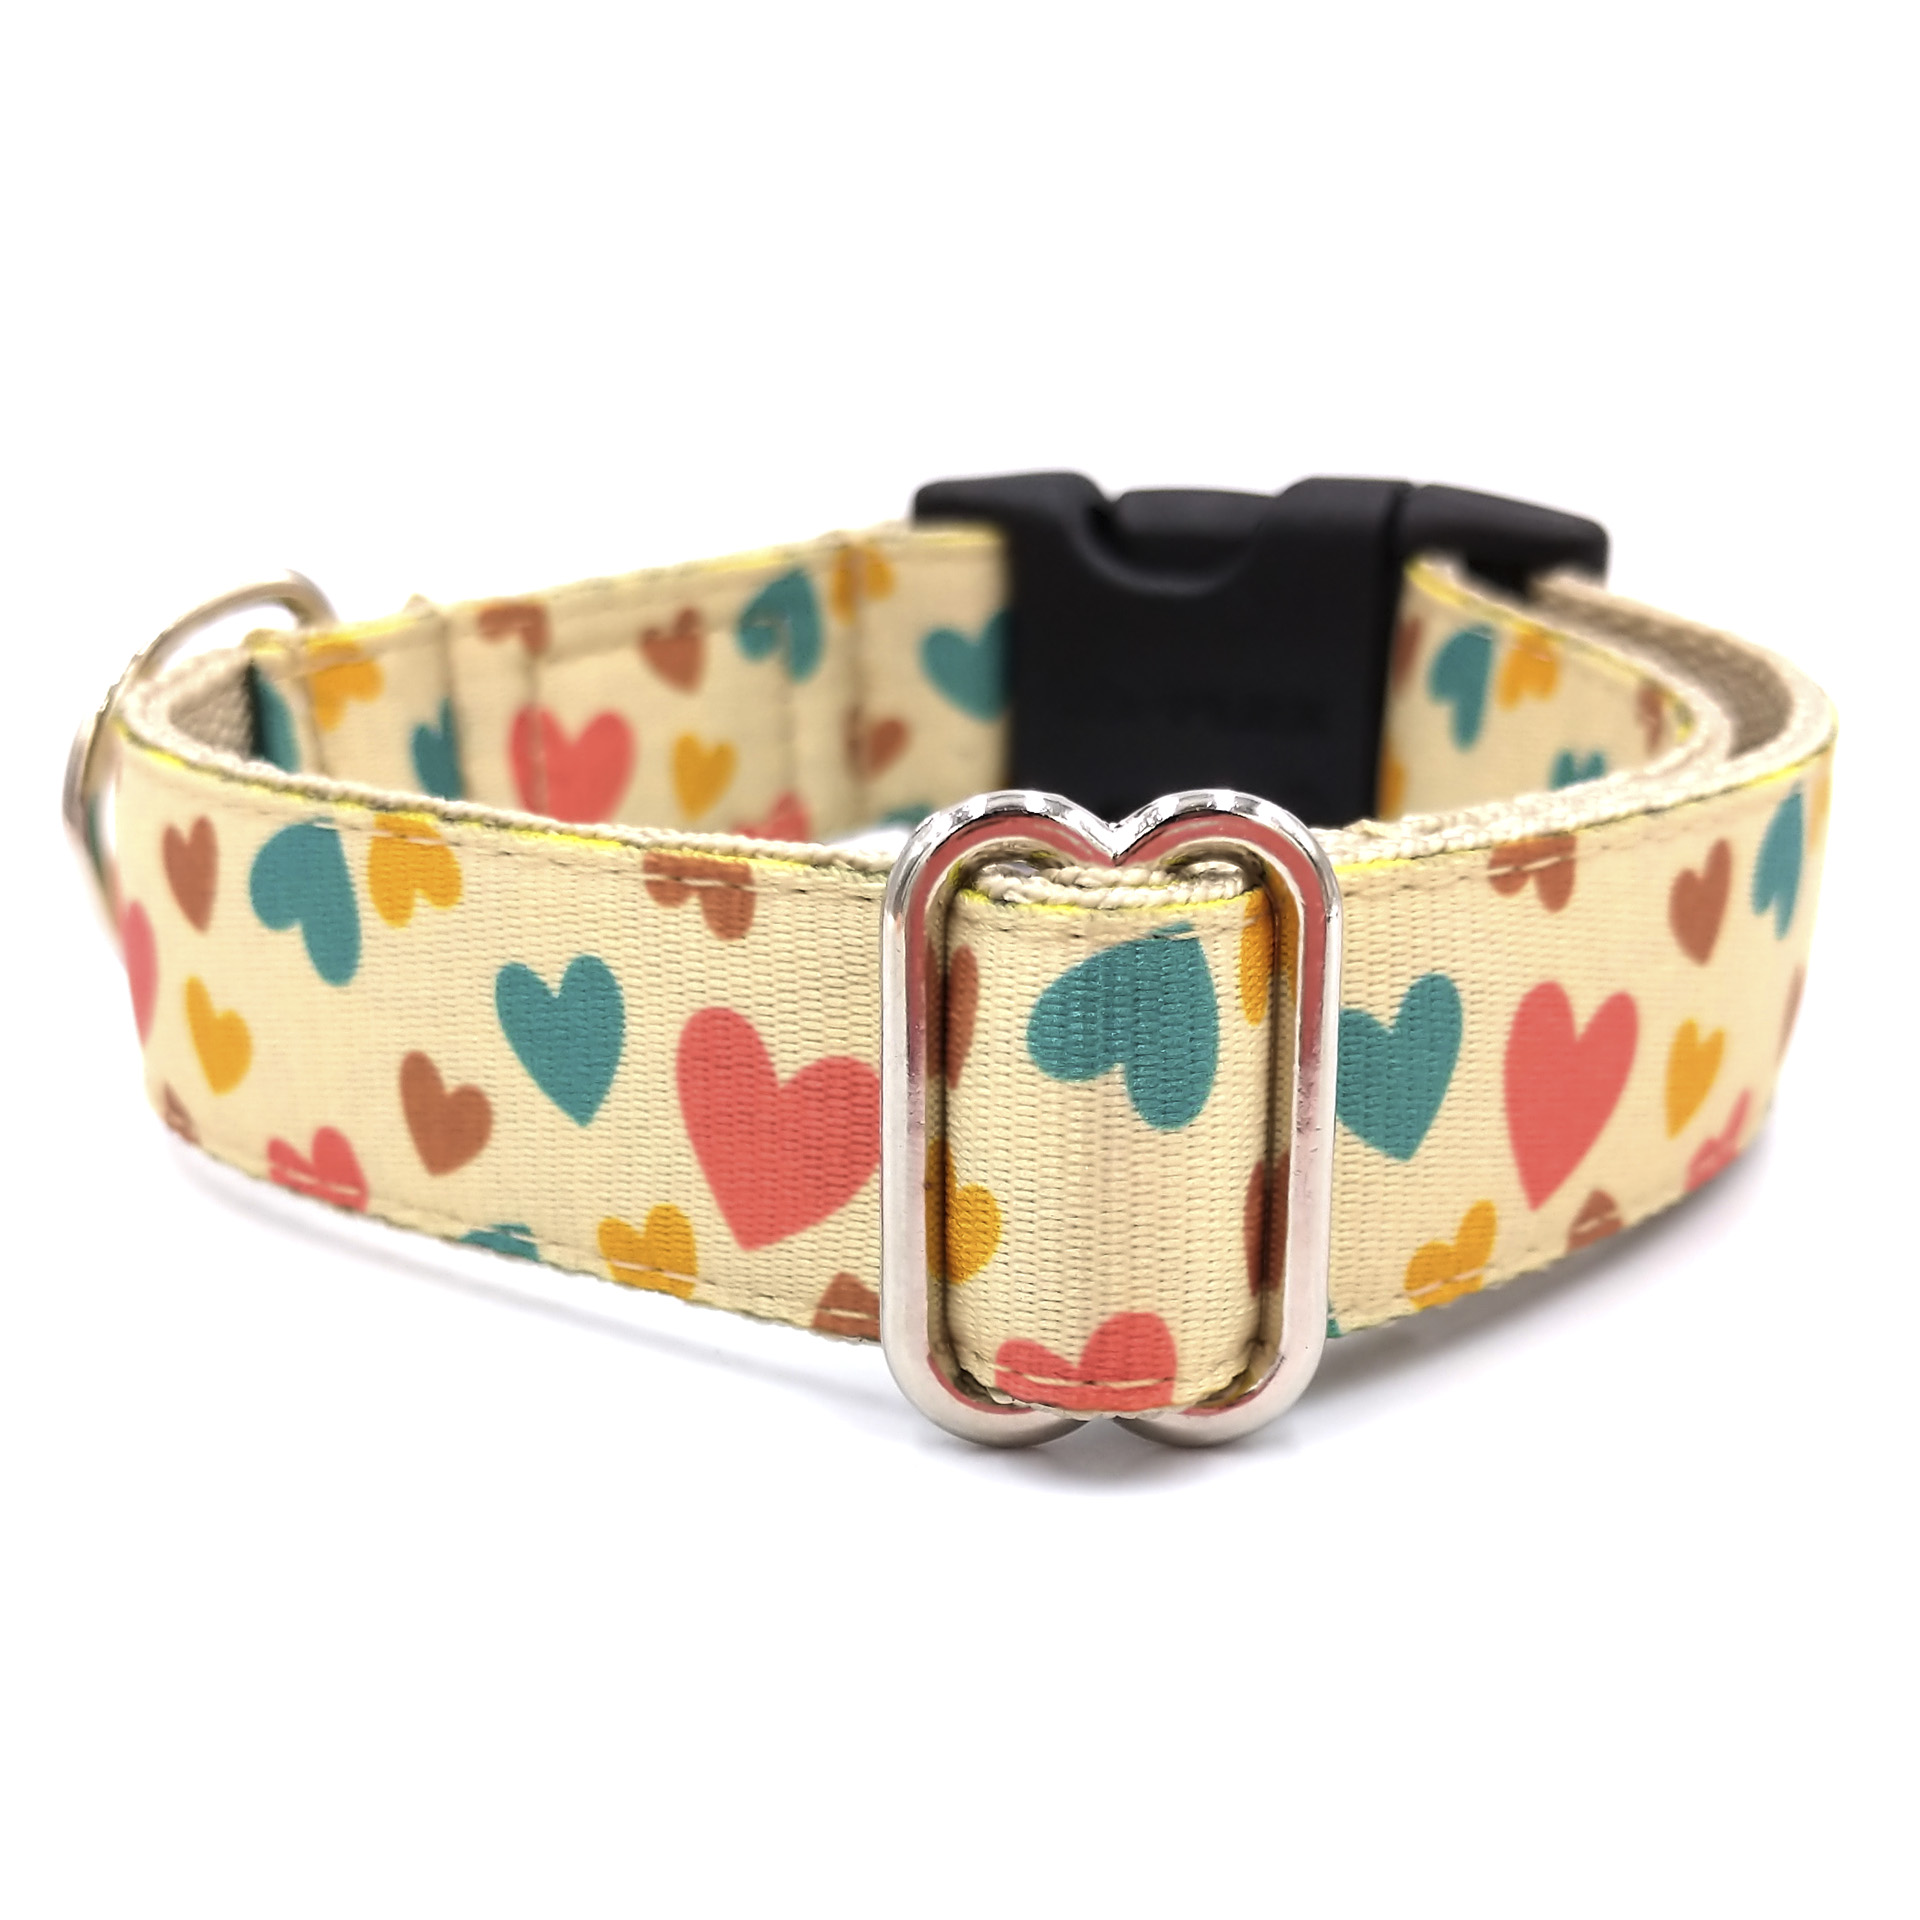 Devotion dog collar